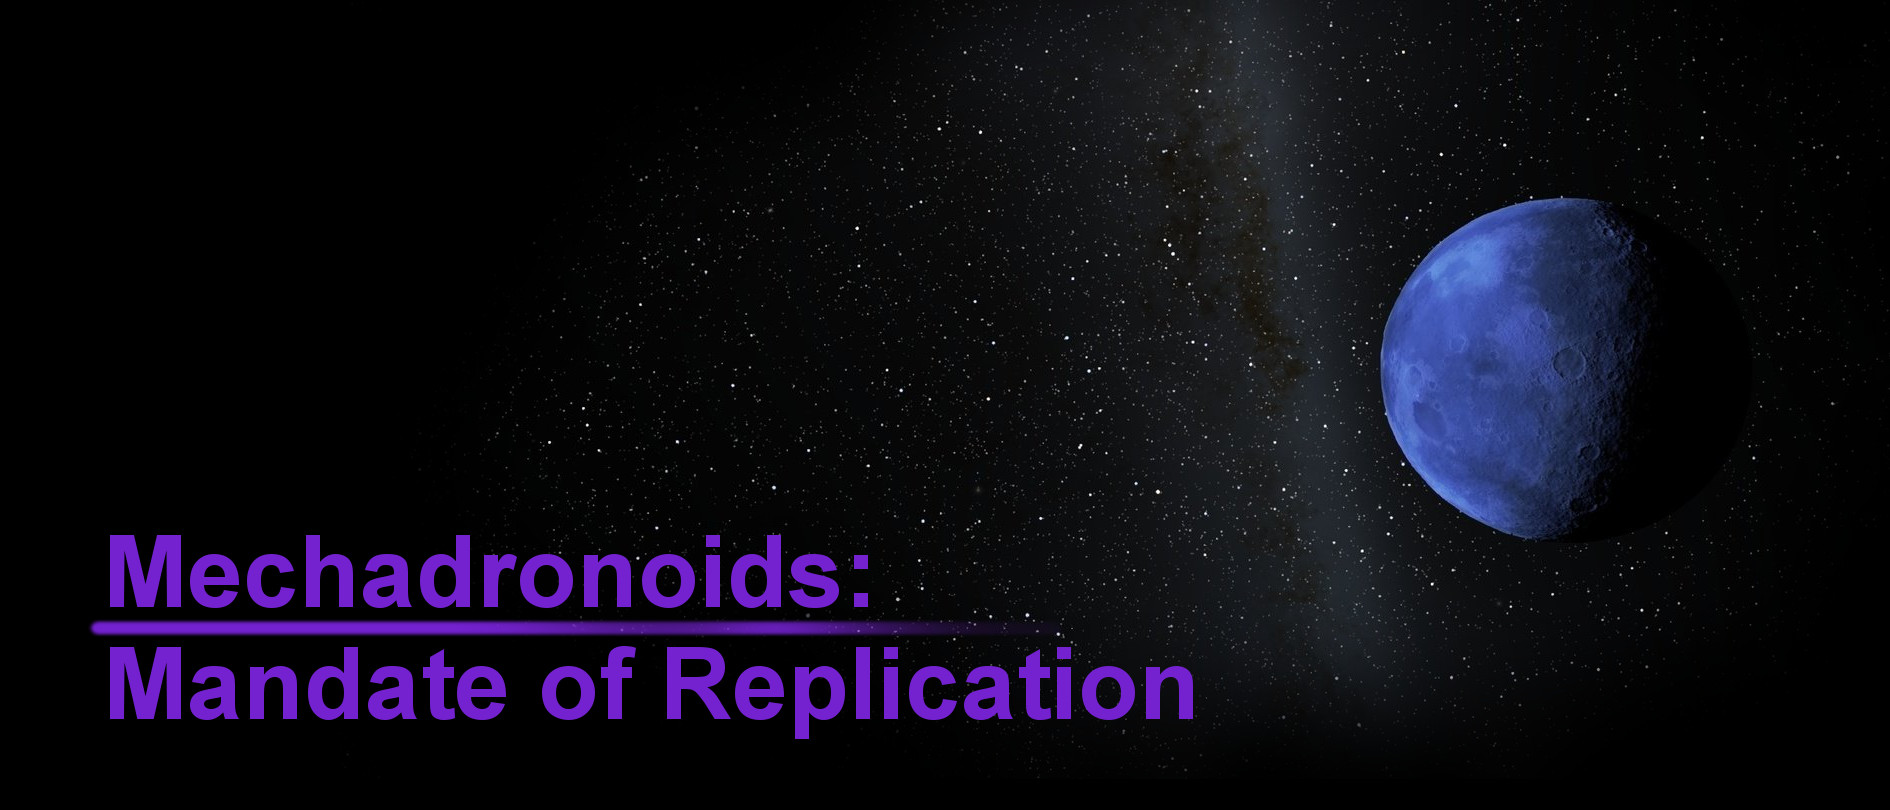 Mechadronoids: Mandate of Replication